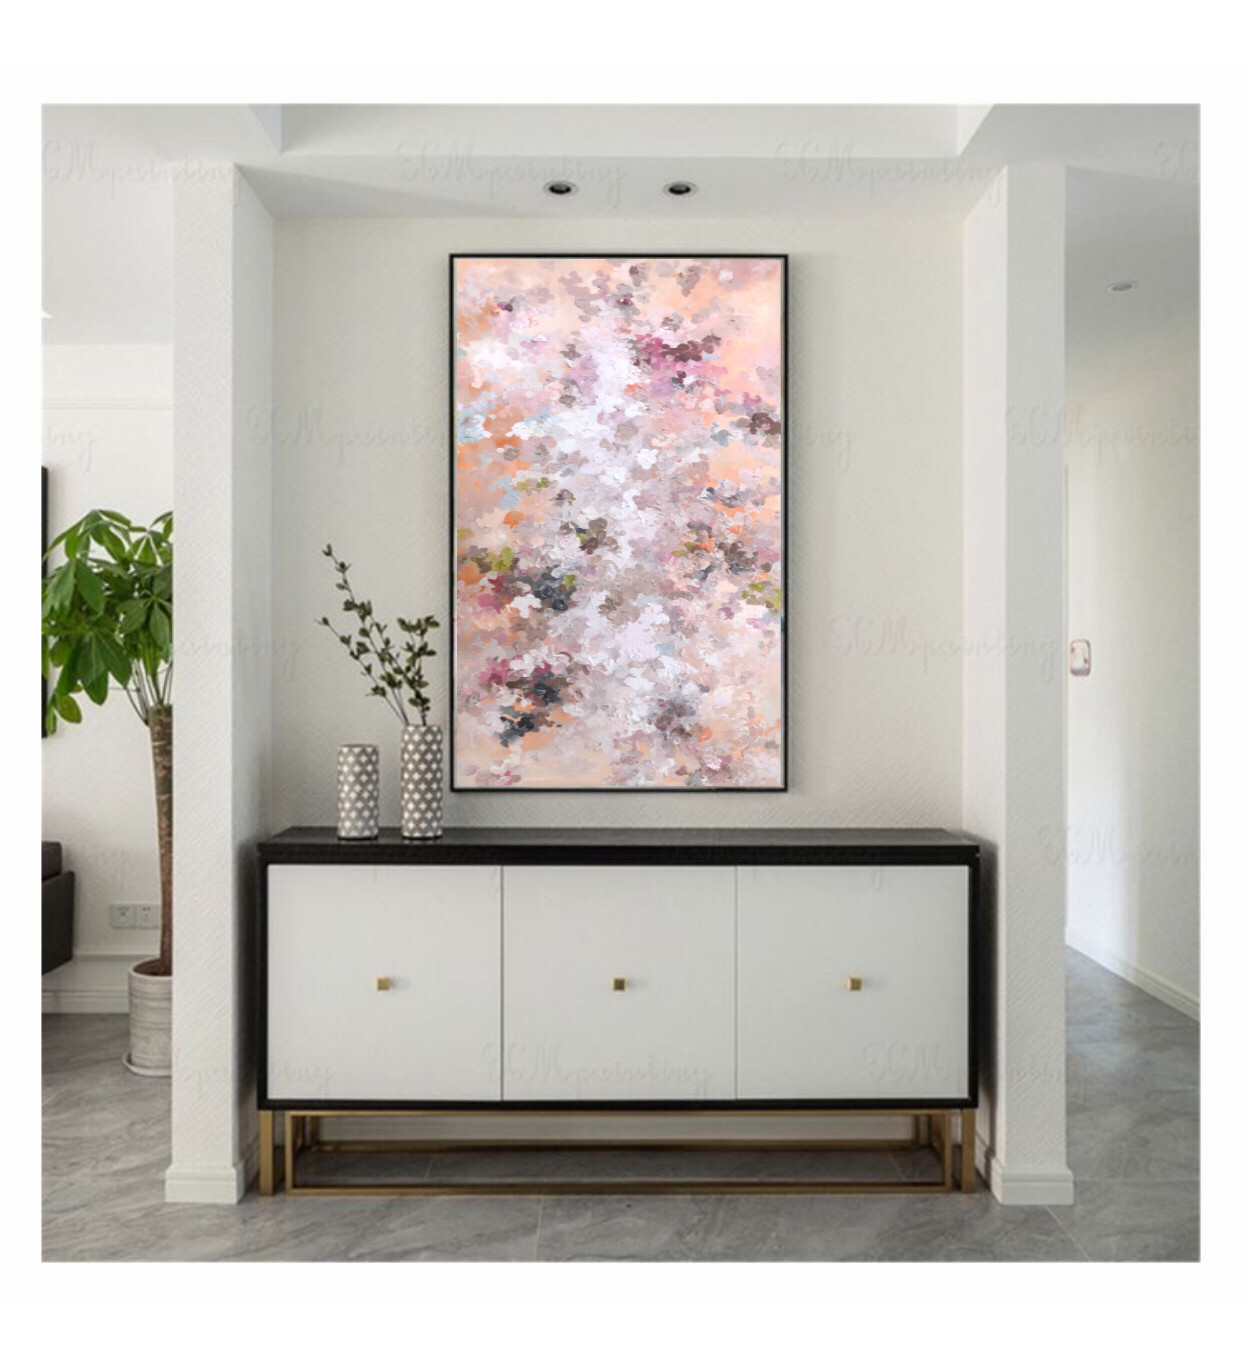 Bubble champagne -Sold-